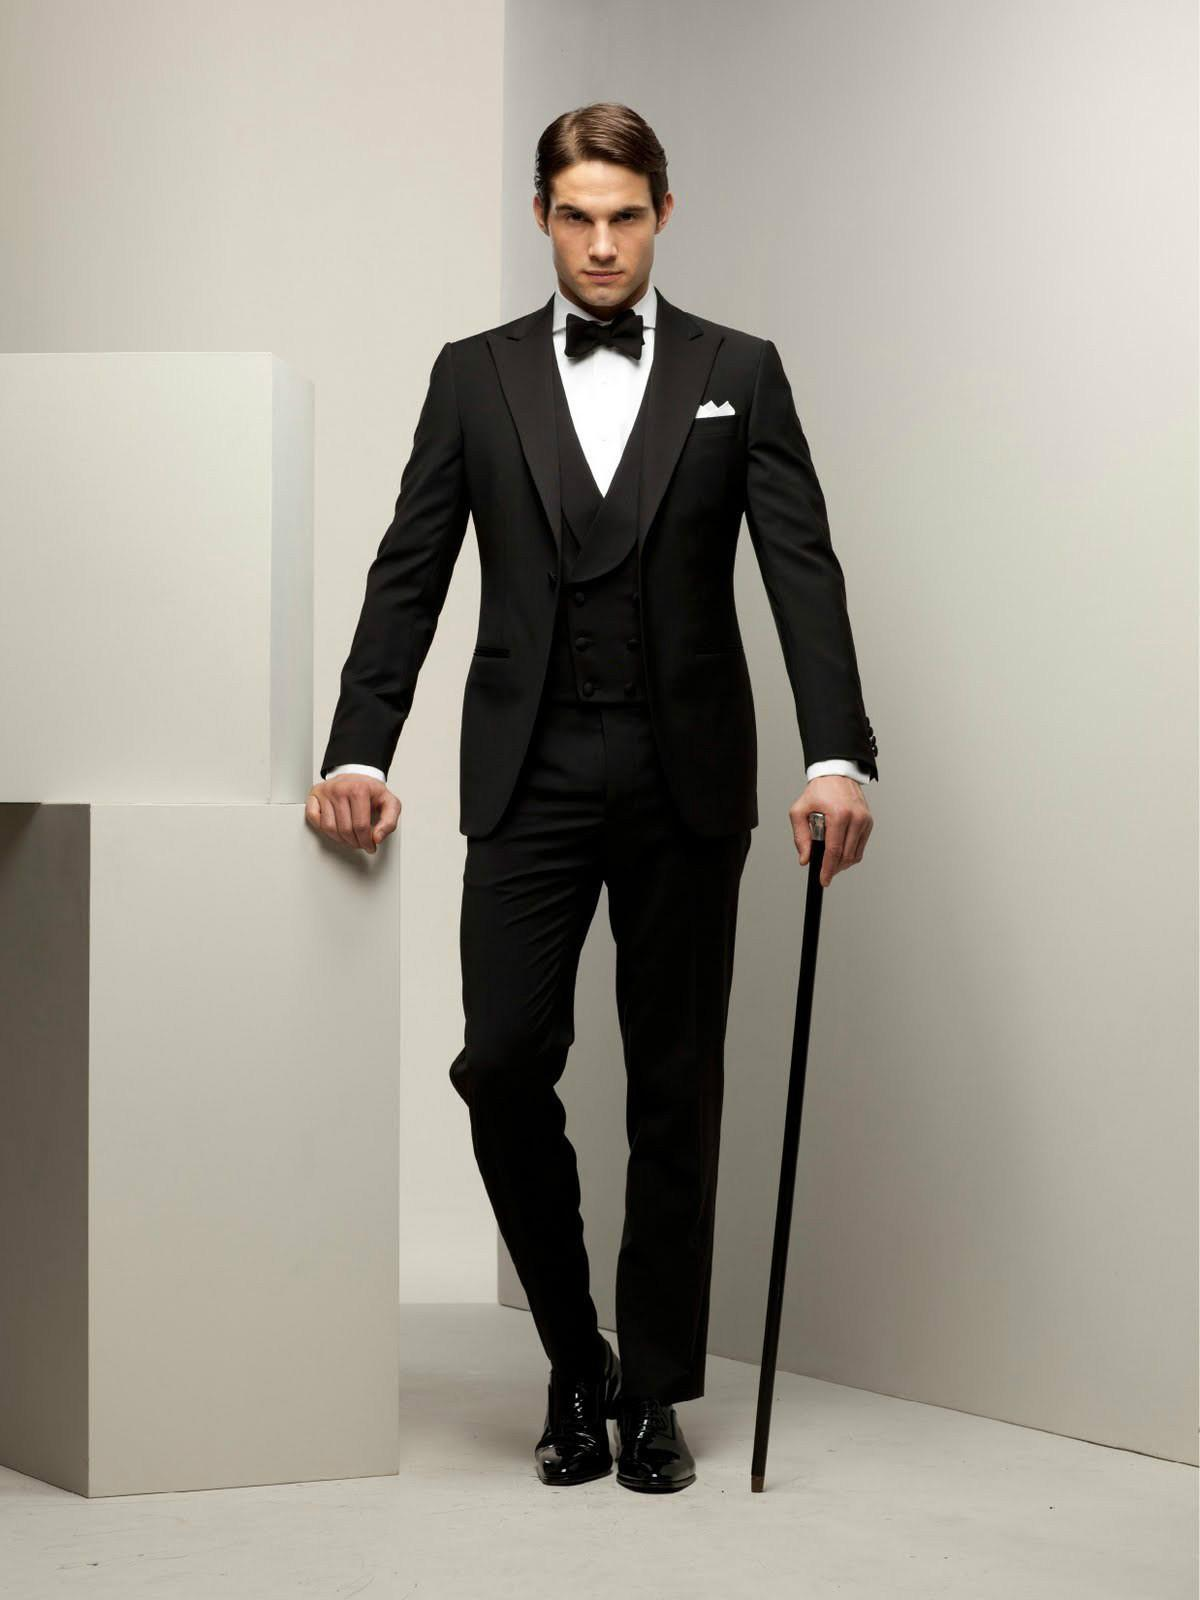 2018 Mens Suit Black Suits Groom Tuxedo For Wedding Formal ...